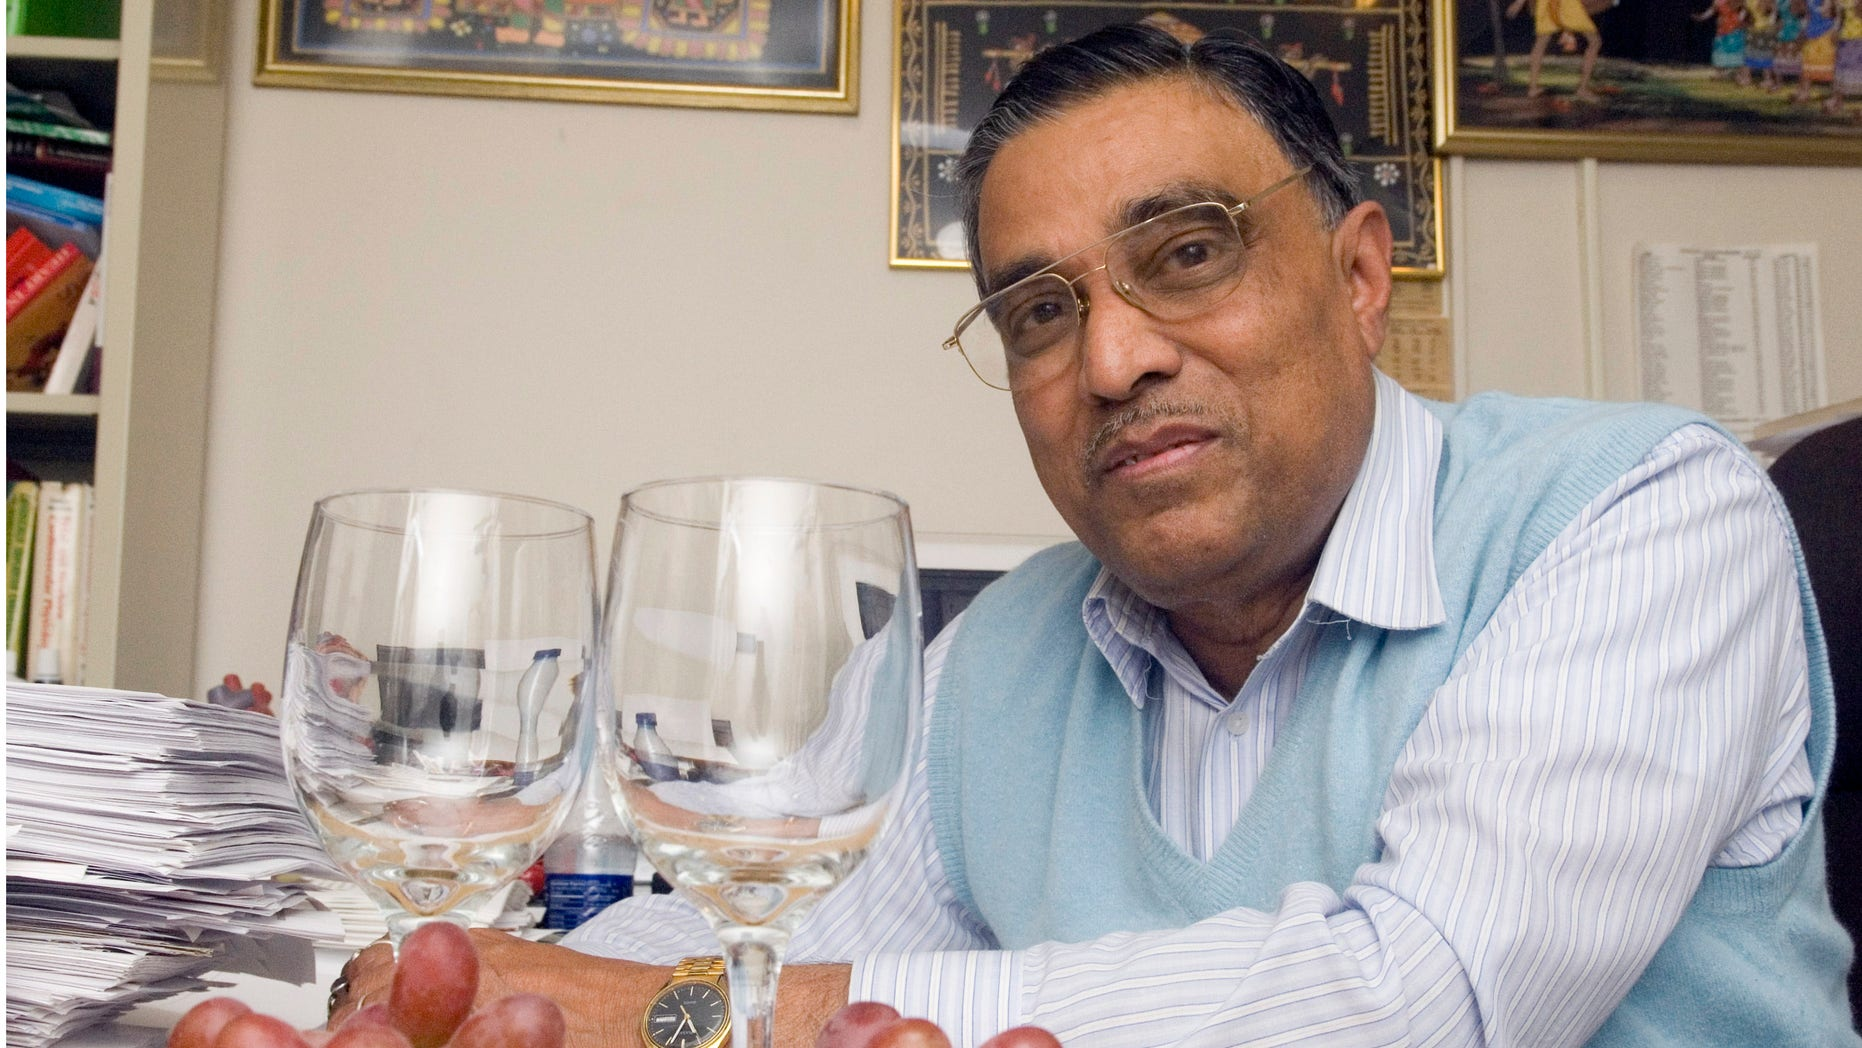 This 2006 photo shows Dipak Das with grapes and wine glasses at his office at the UConn Health Center in Farmington, Conn.